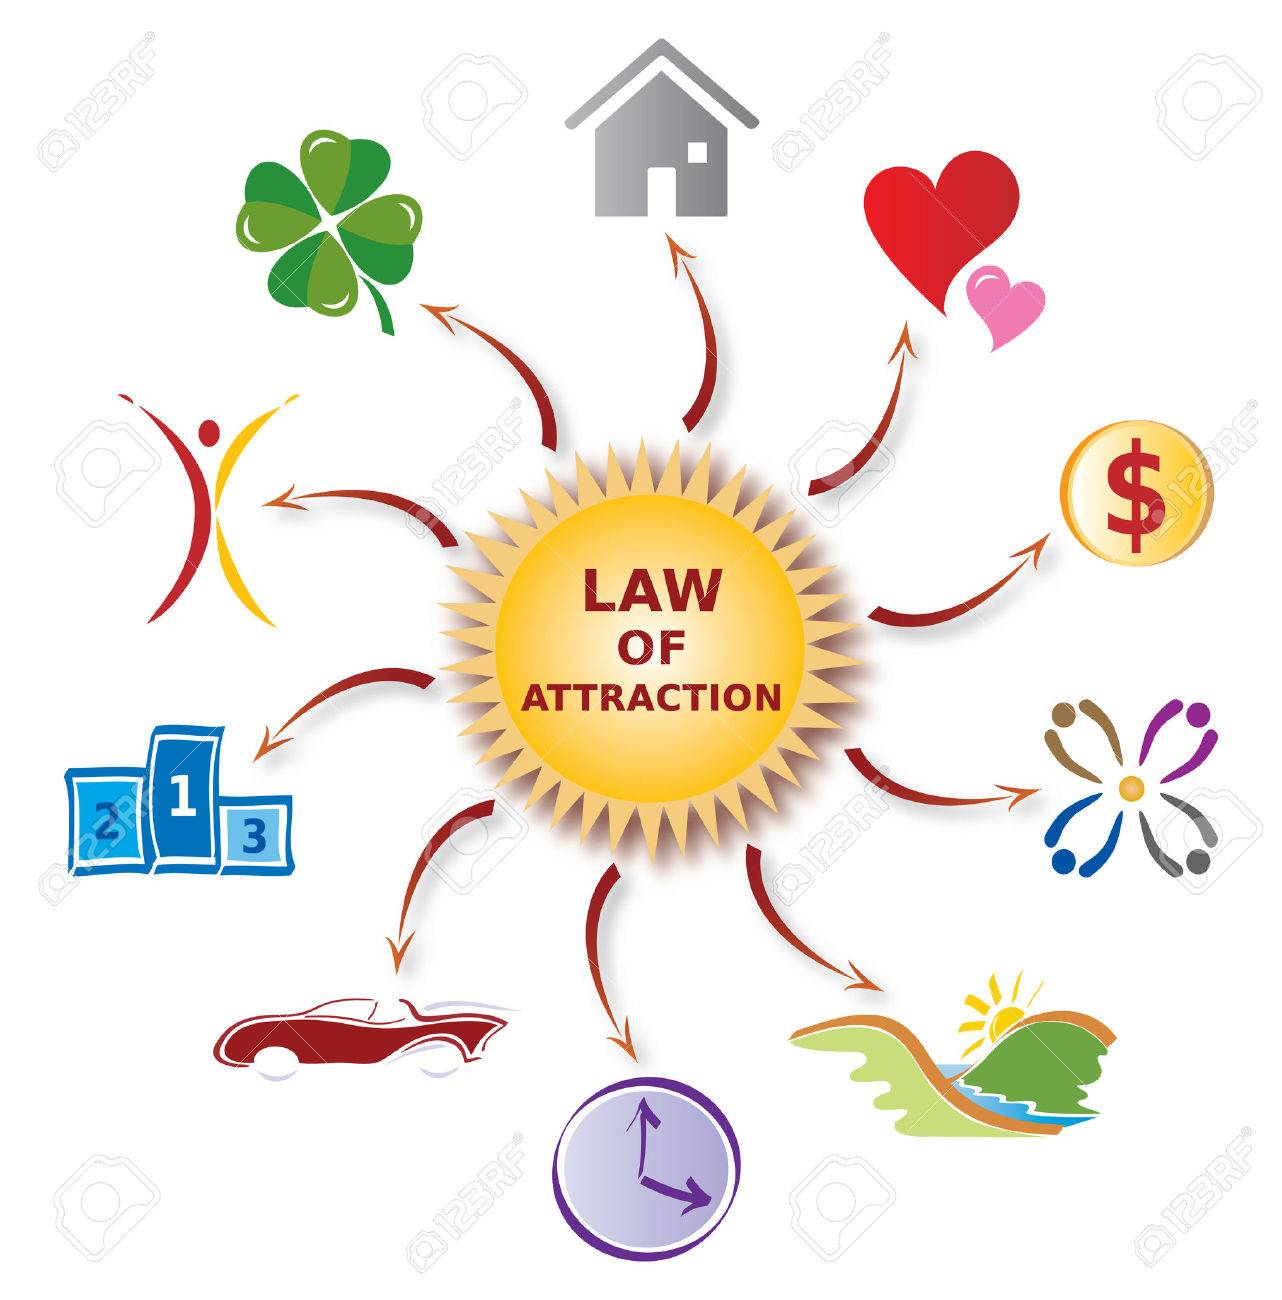 Illustration law of attraction various icons royalty free illustration law of attraction various icons stock vector 46455843 biocorpaavc